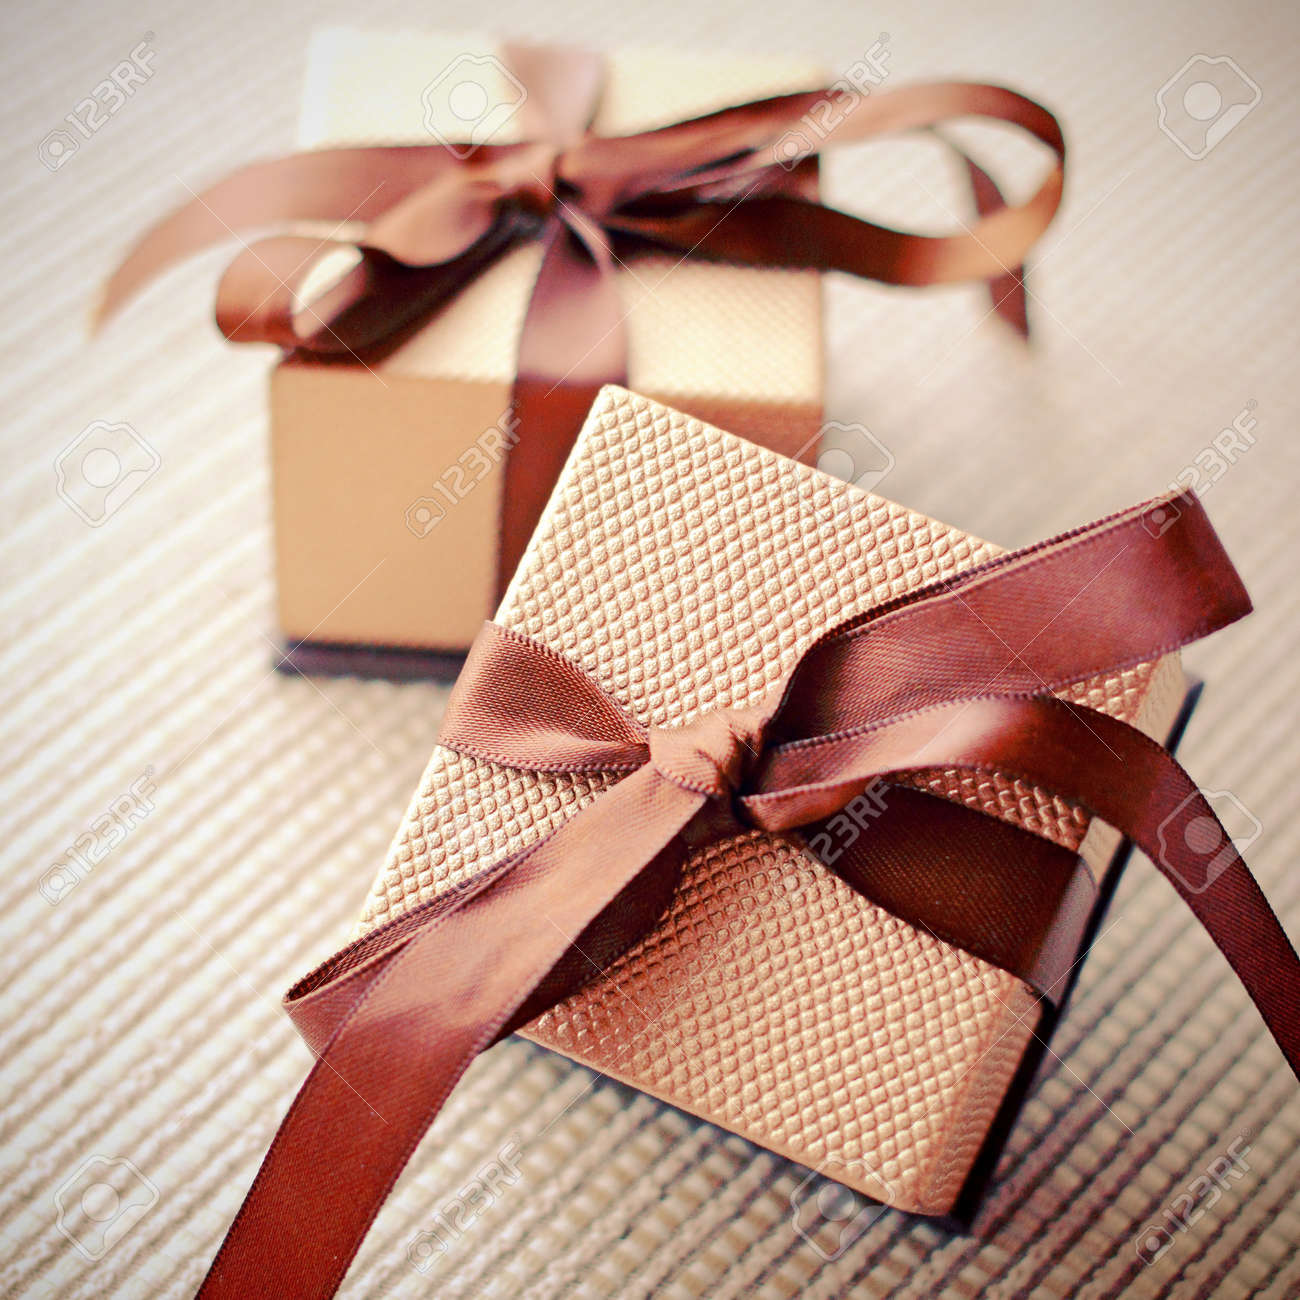 Luxury gift boxes with ribbon retro filter effect stock photo luxury gift boxes with ribbon retro filter effect stock photo 21434232 negle Choice Image